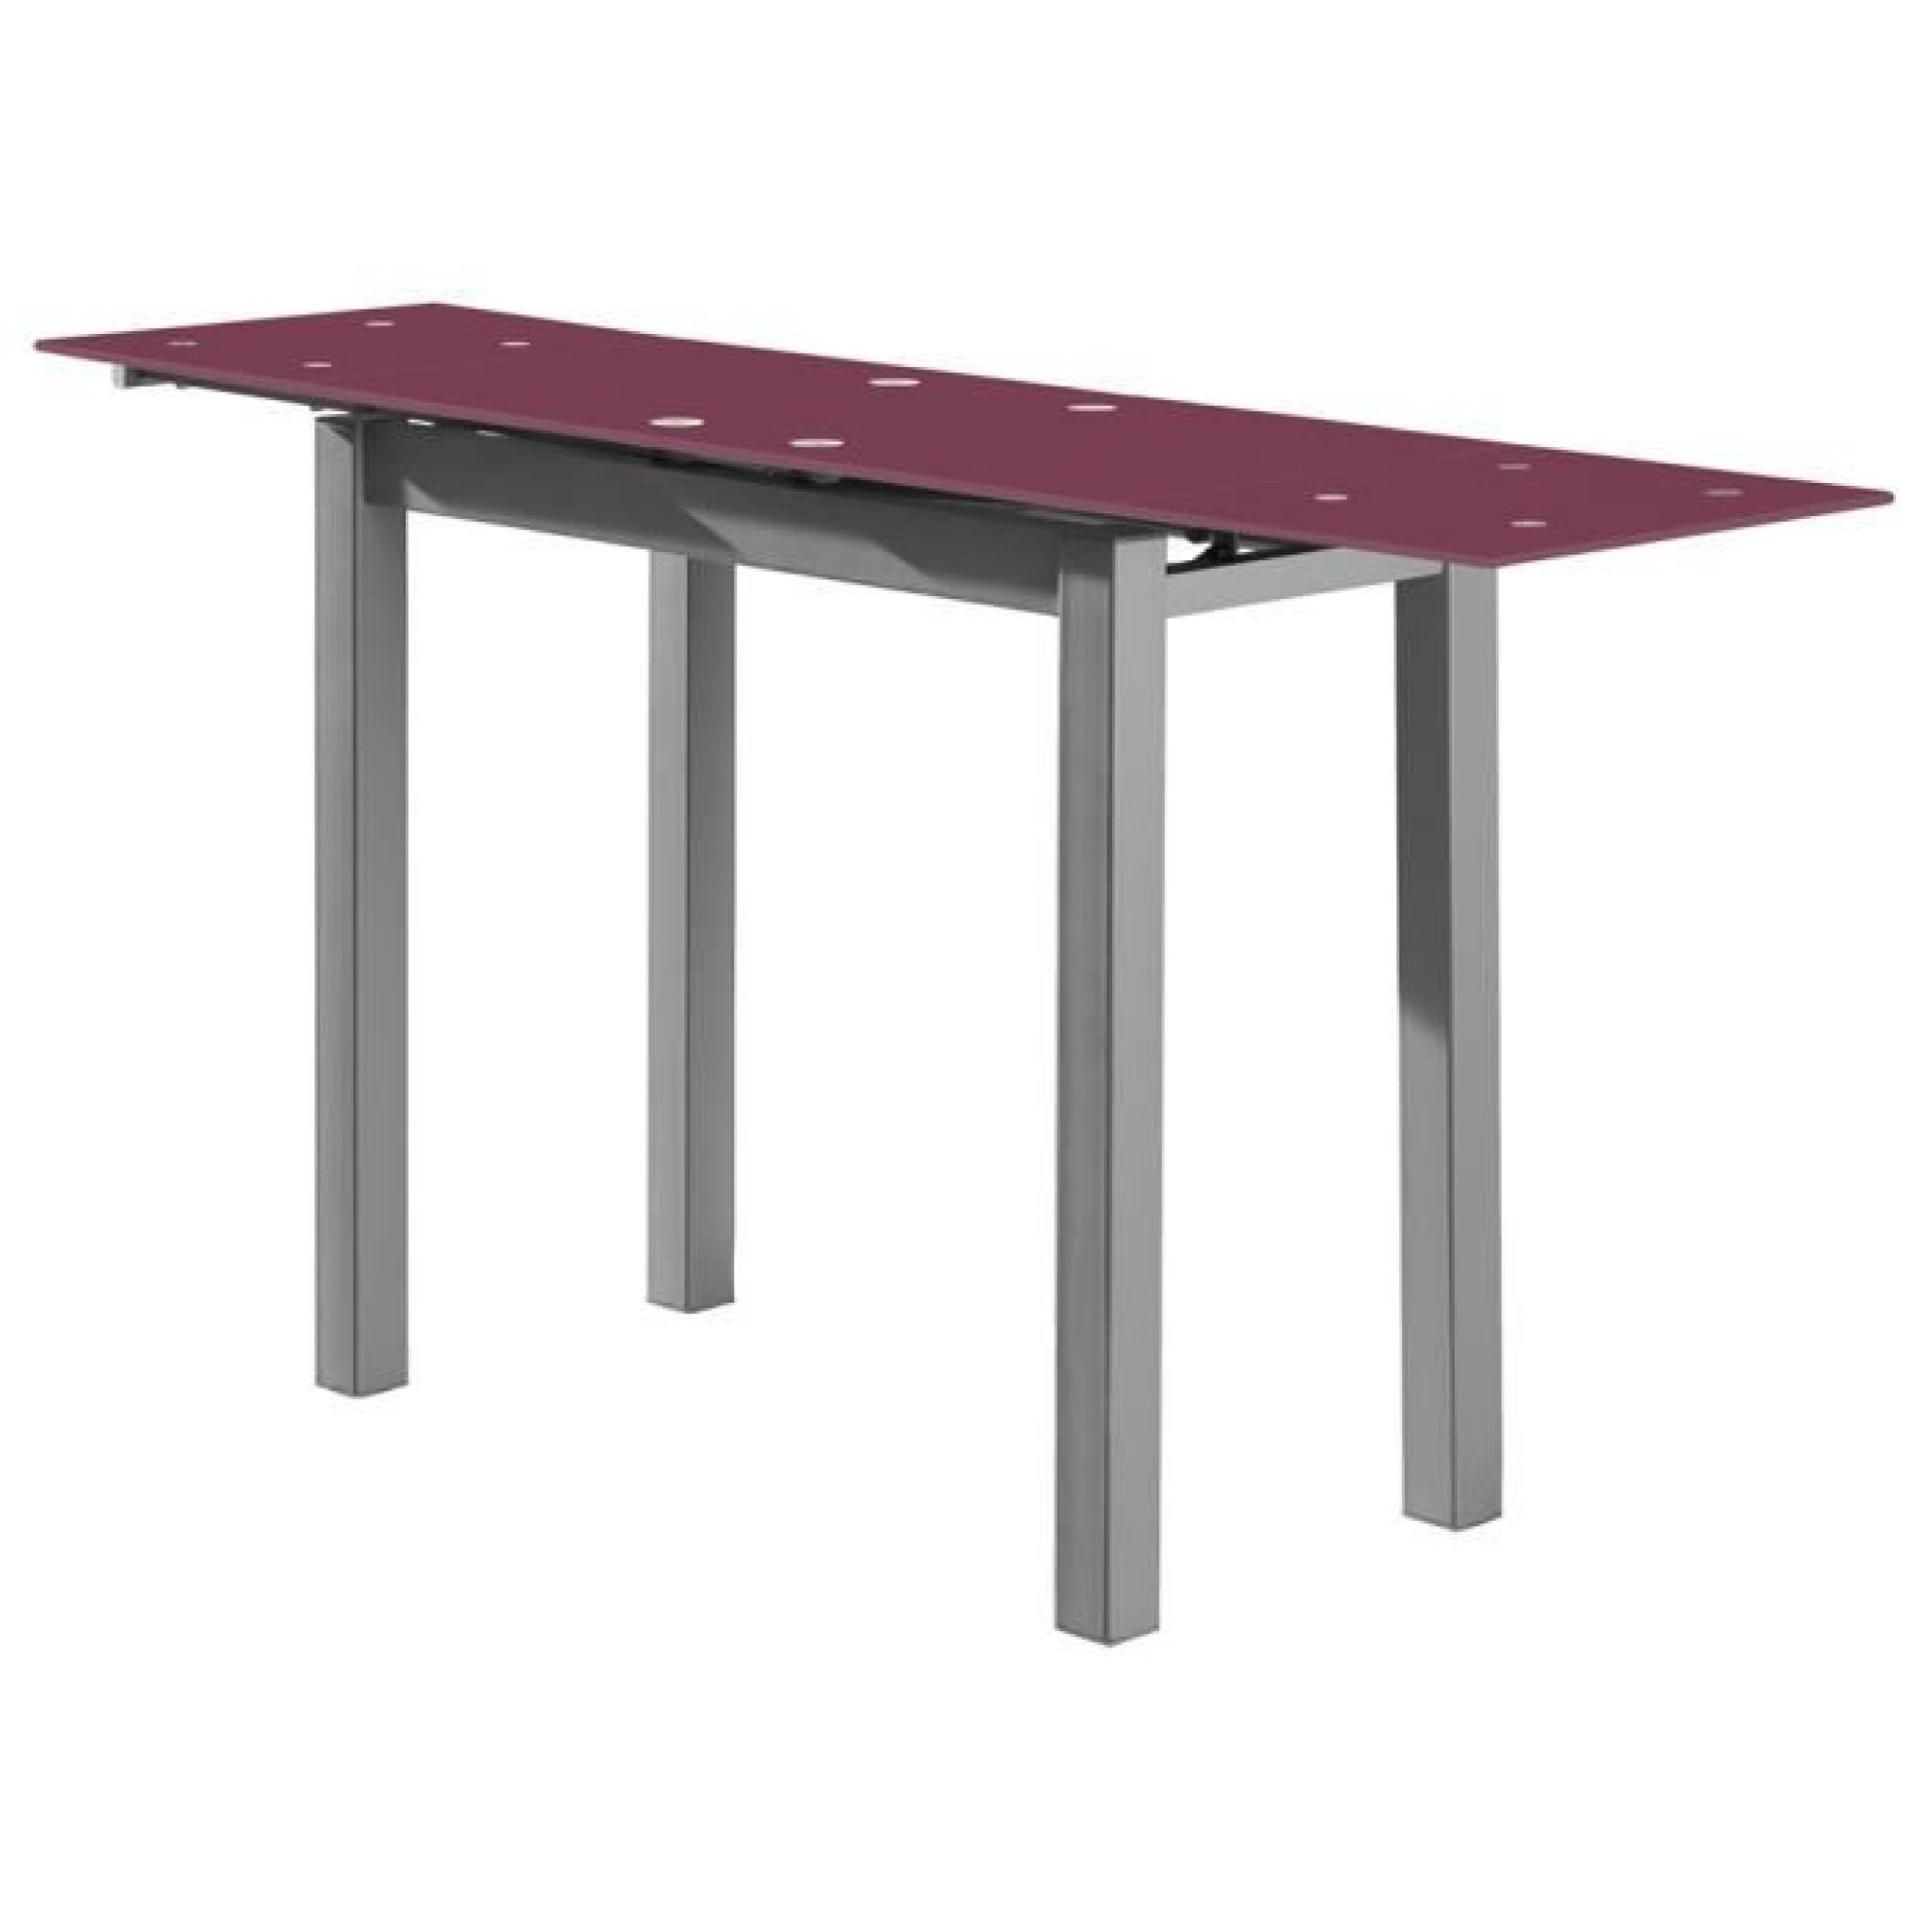 Table extensible en verre prune acier gris 850 1450 x 400 for Table en verre but